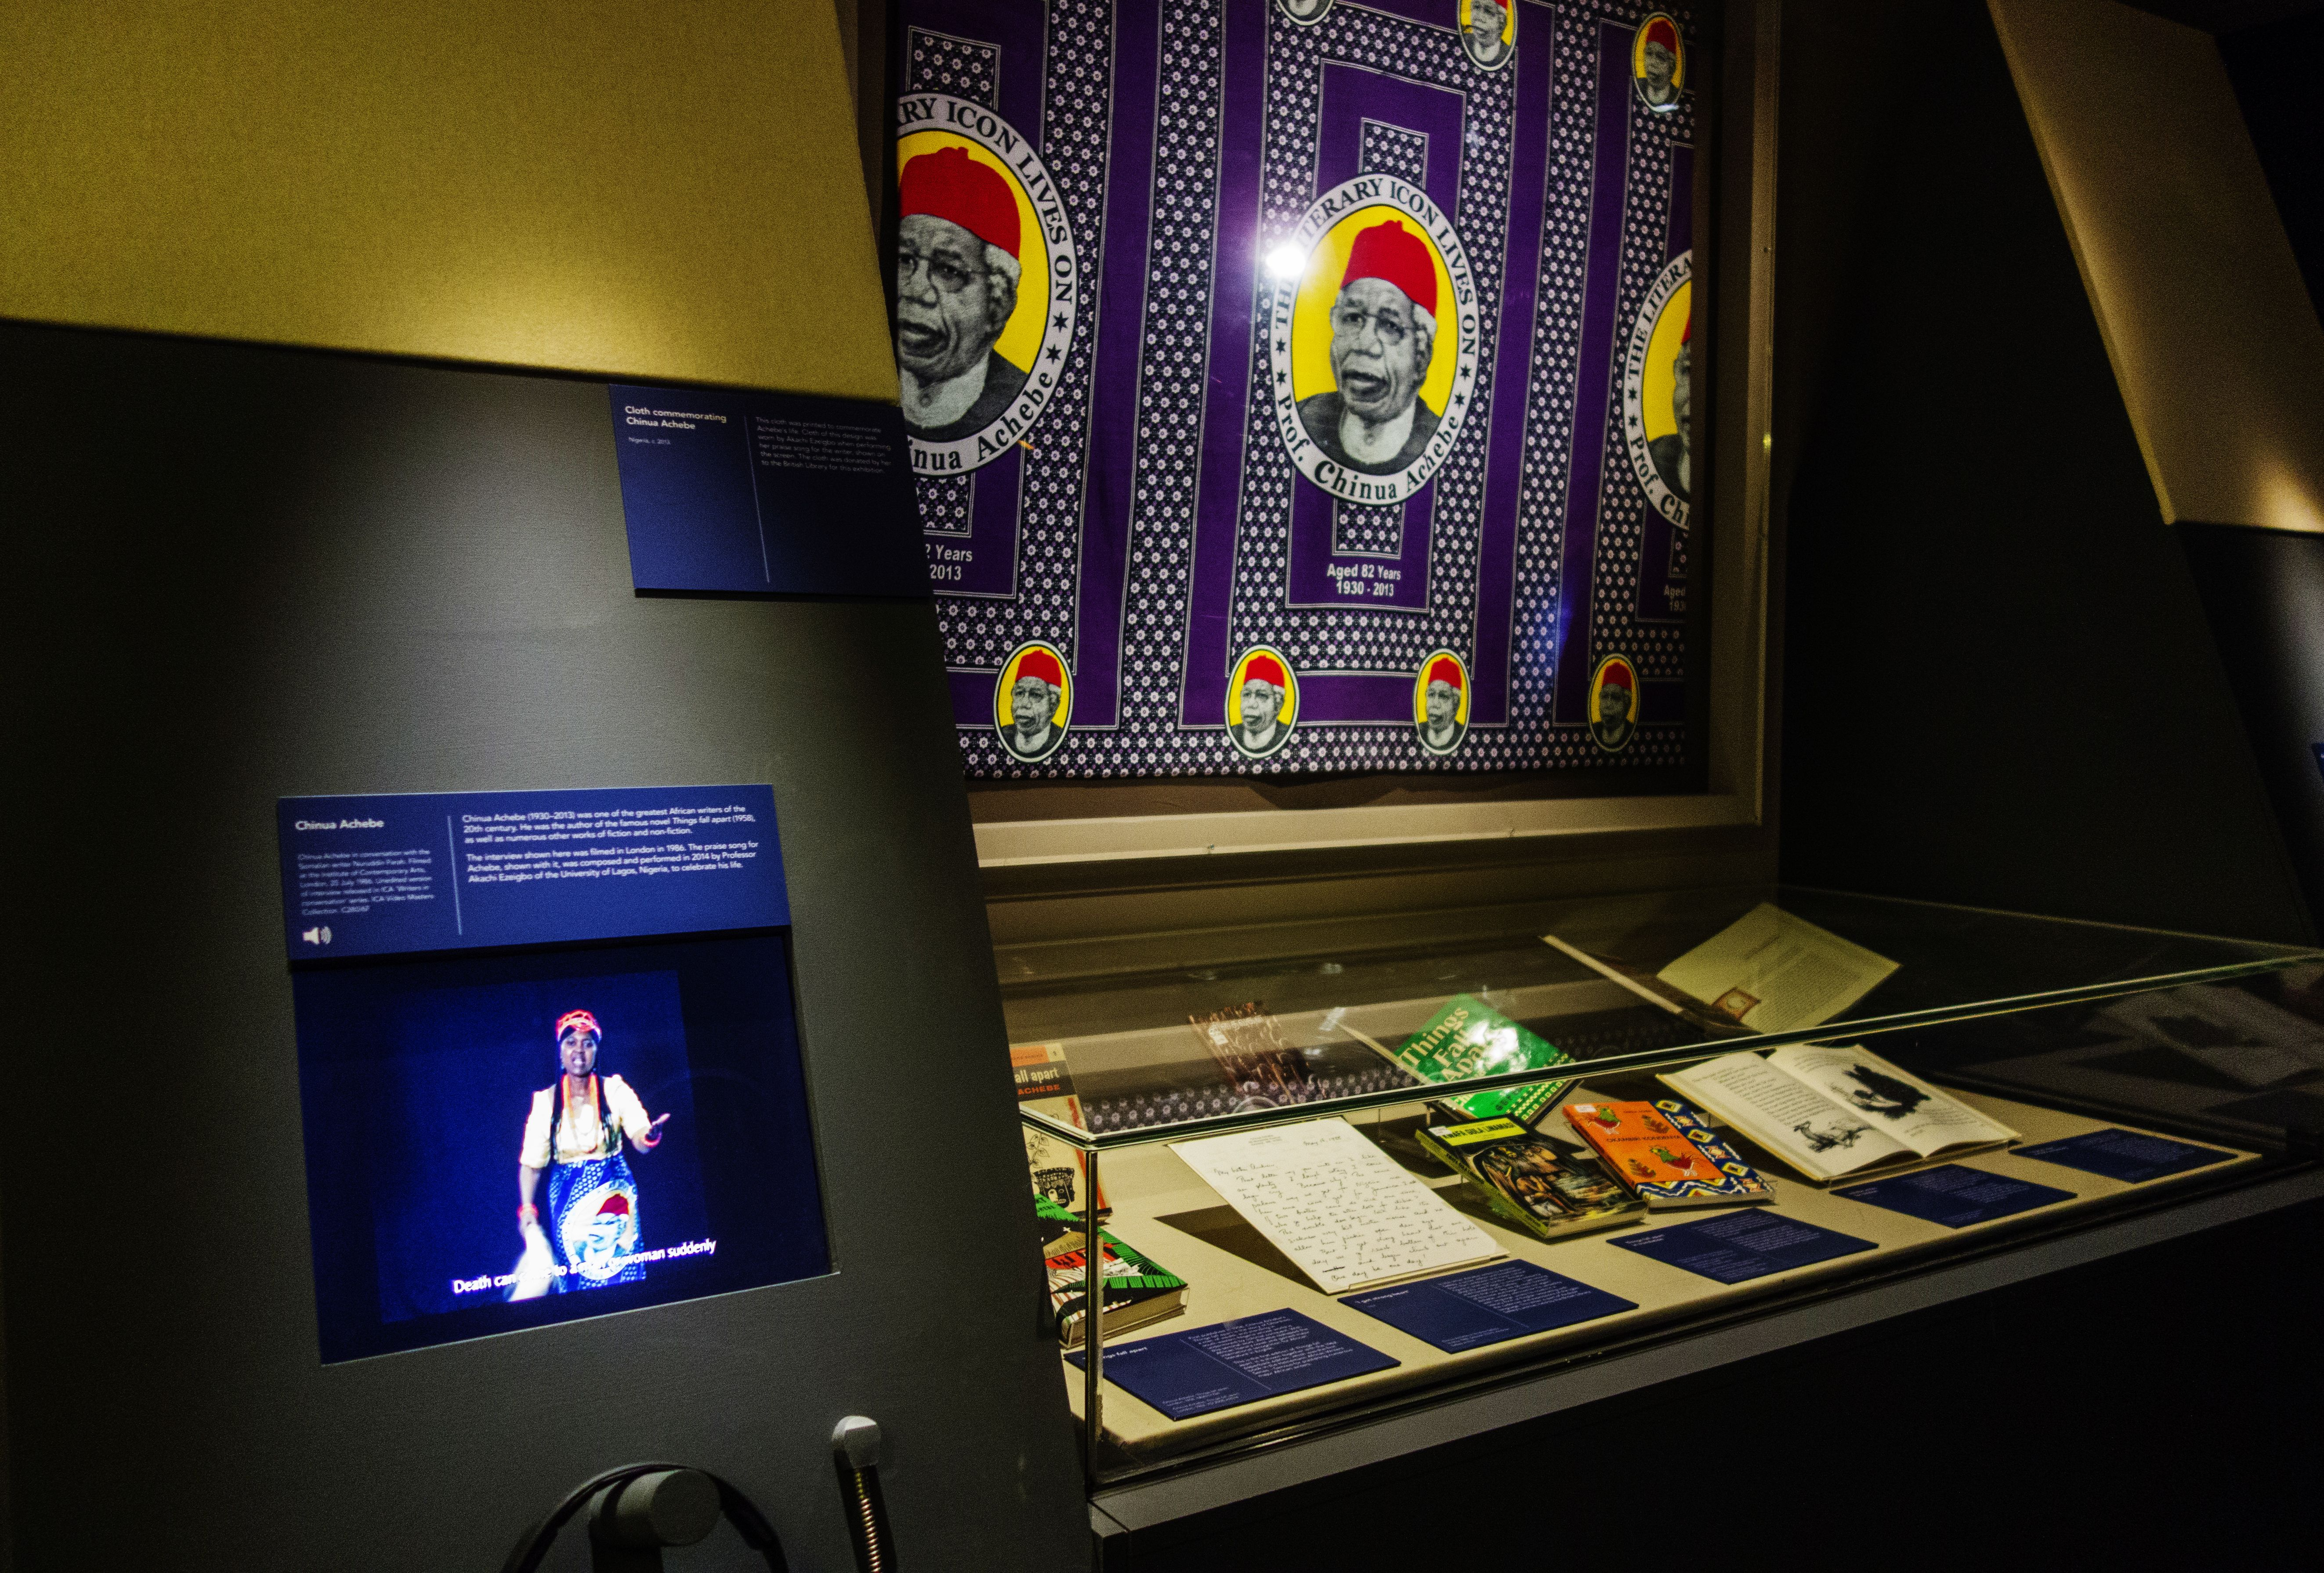 Case showing 'Things fall apart' and other work by Chinua Achebe in the British Library's 'West Africa: Word, Symbol, Song' exhibition